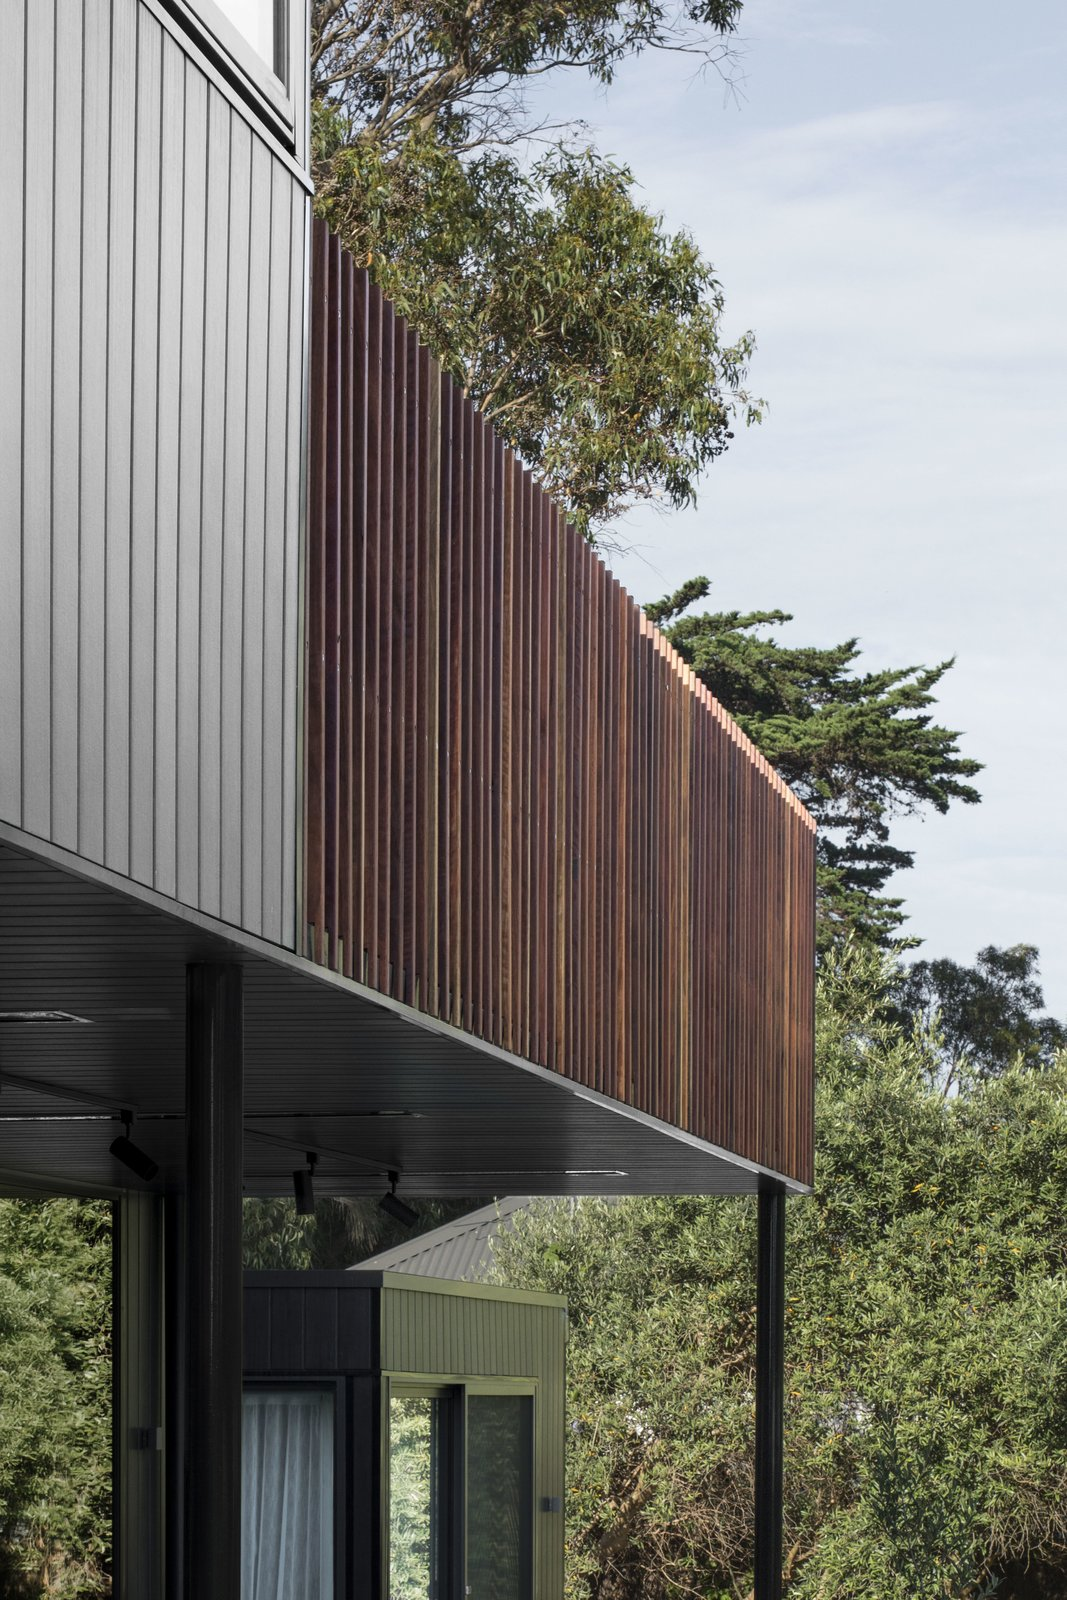 Exterior, Wood Siding Material, Flat RoofLine, House Building Type, and Metal Roof Material  Photos from Warraweena